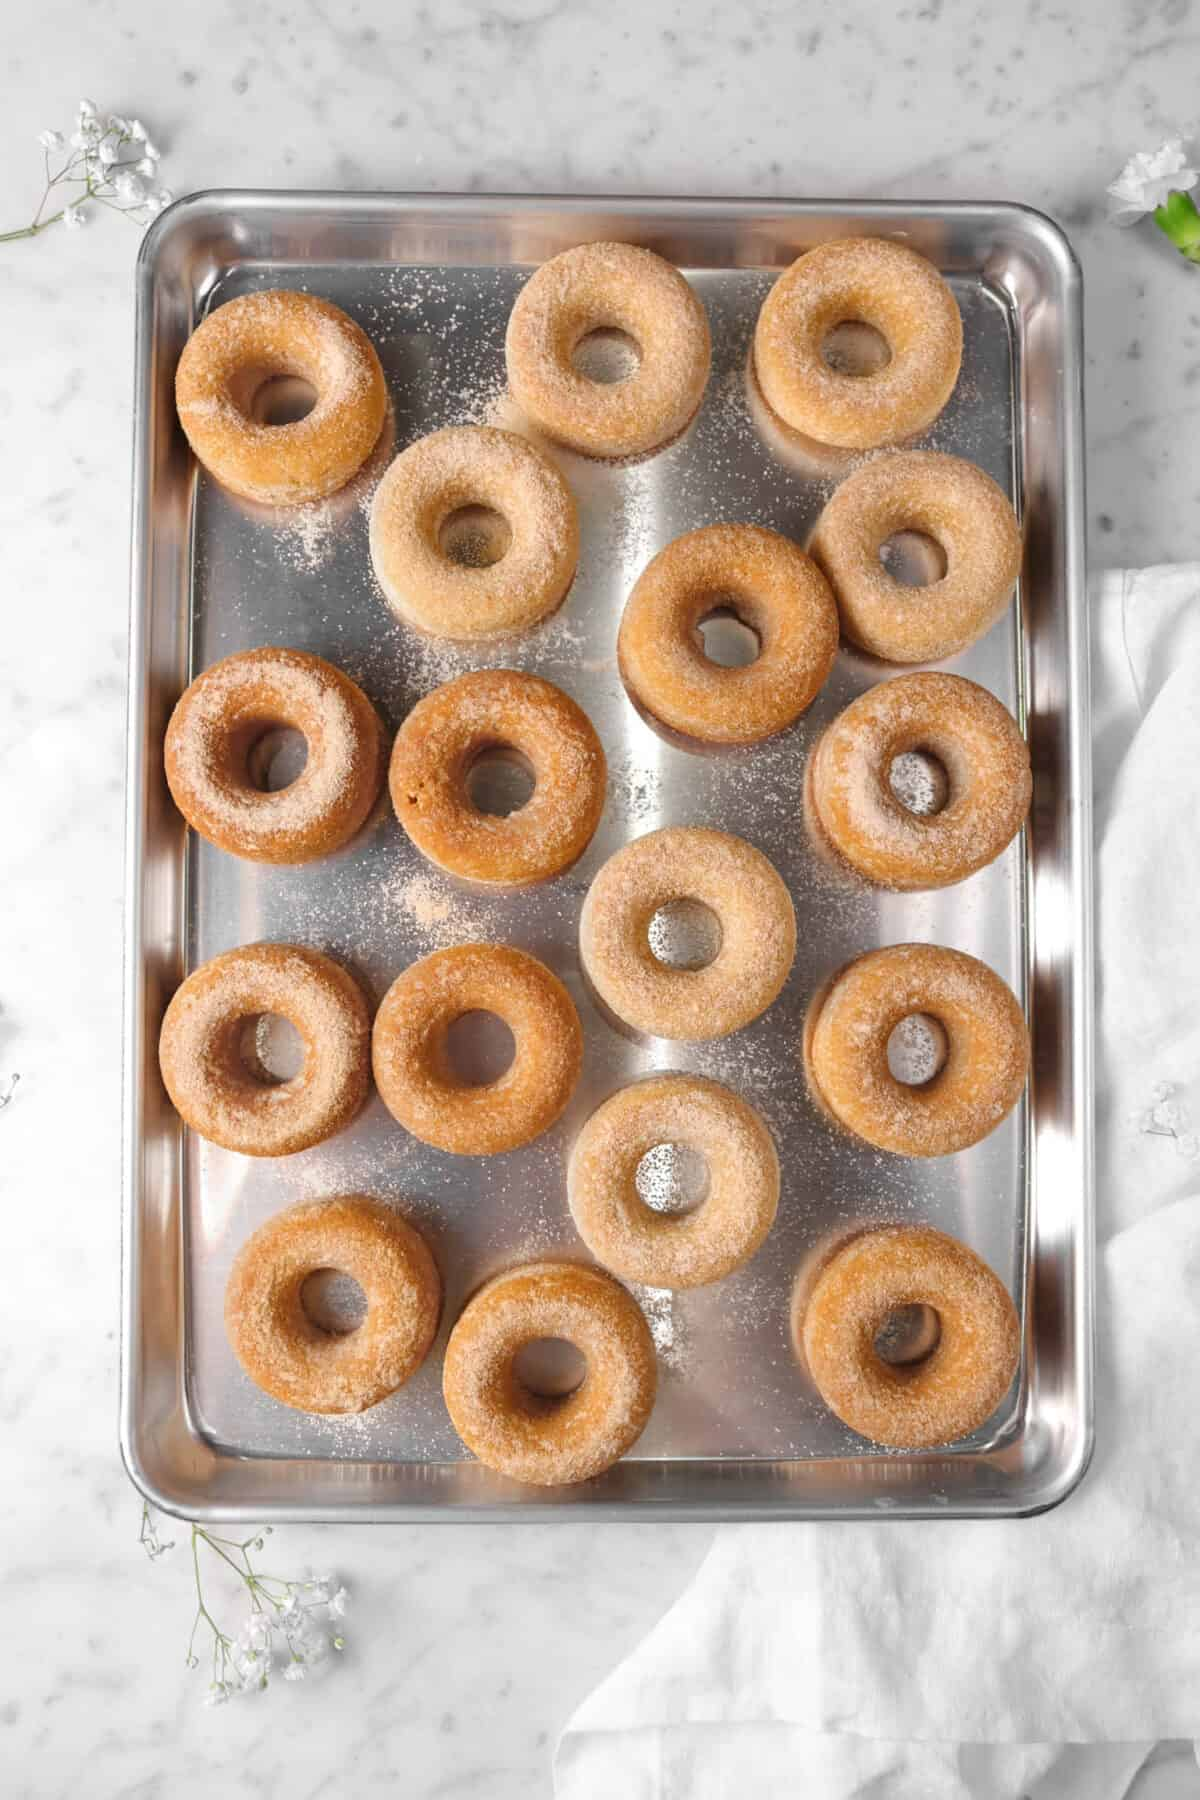 17 cinnamon donuts on a sheet pan with white napkin and flowers